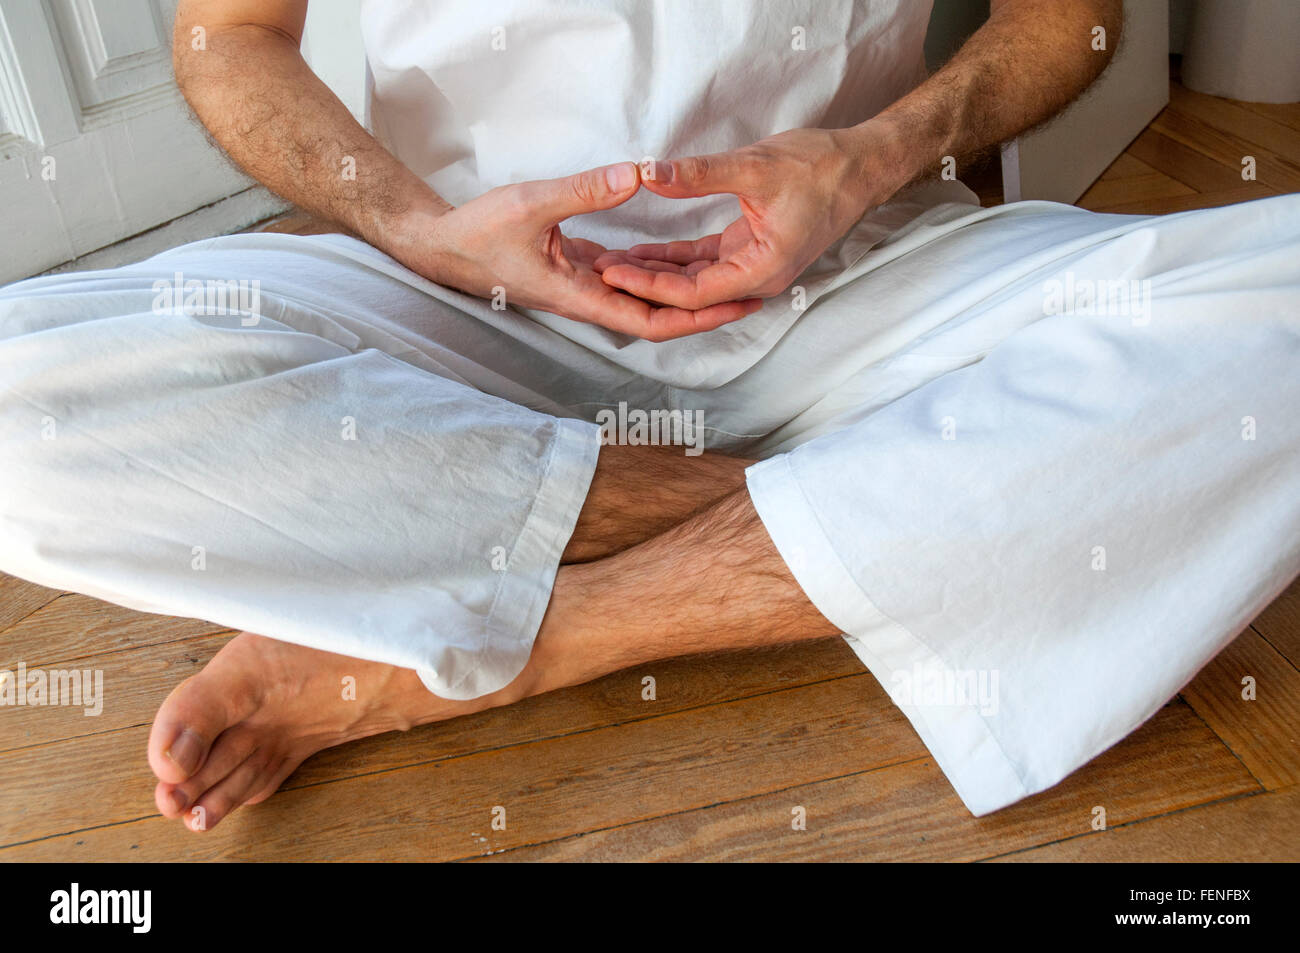 Man practicing yoga, sitting in the lotus position. - Stock Image